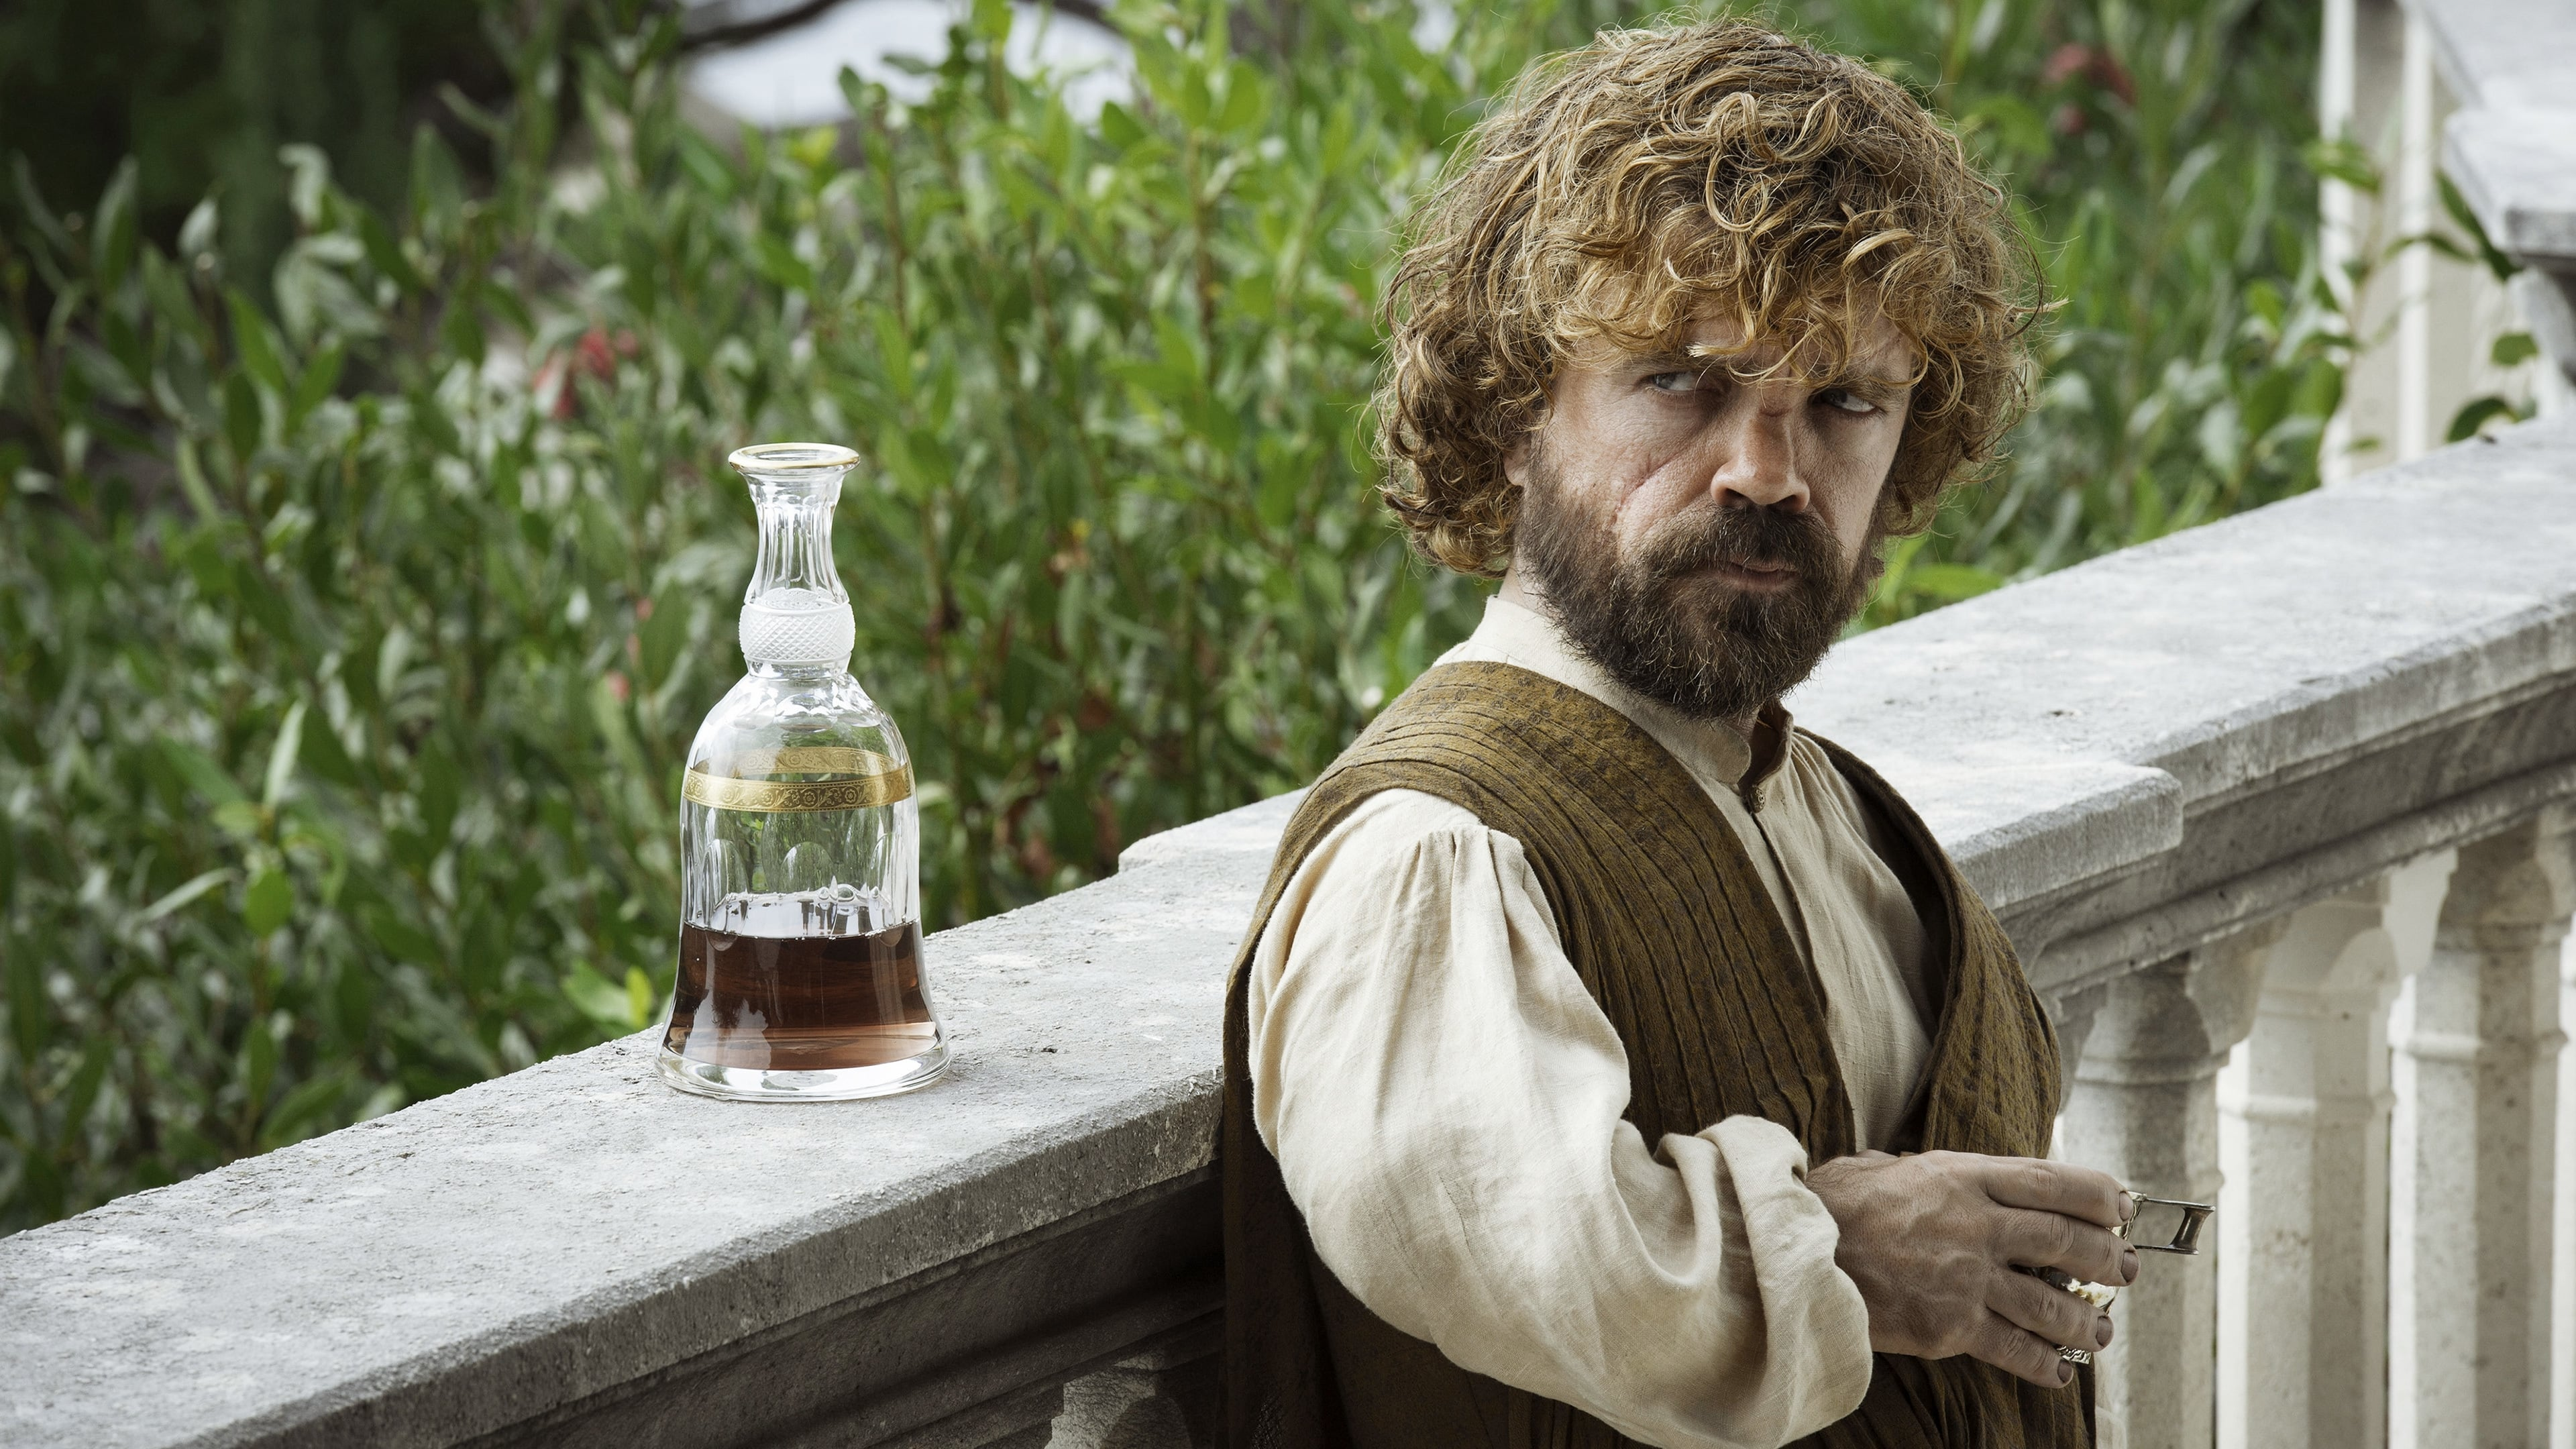 Game of Thrones - Season 5 Episode 1 : The Wars to Come